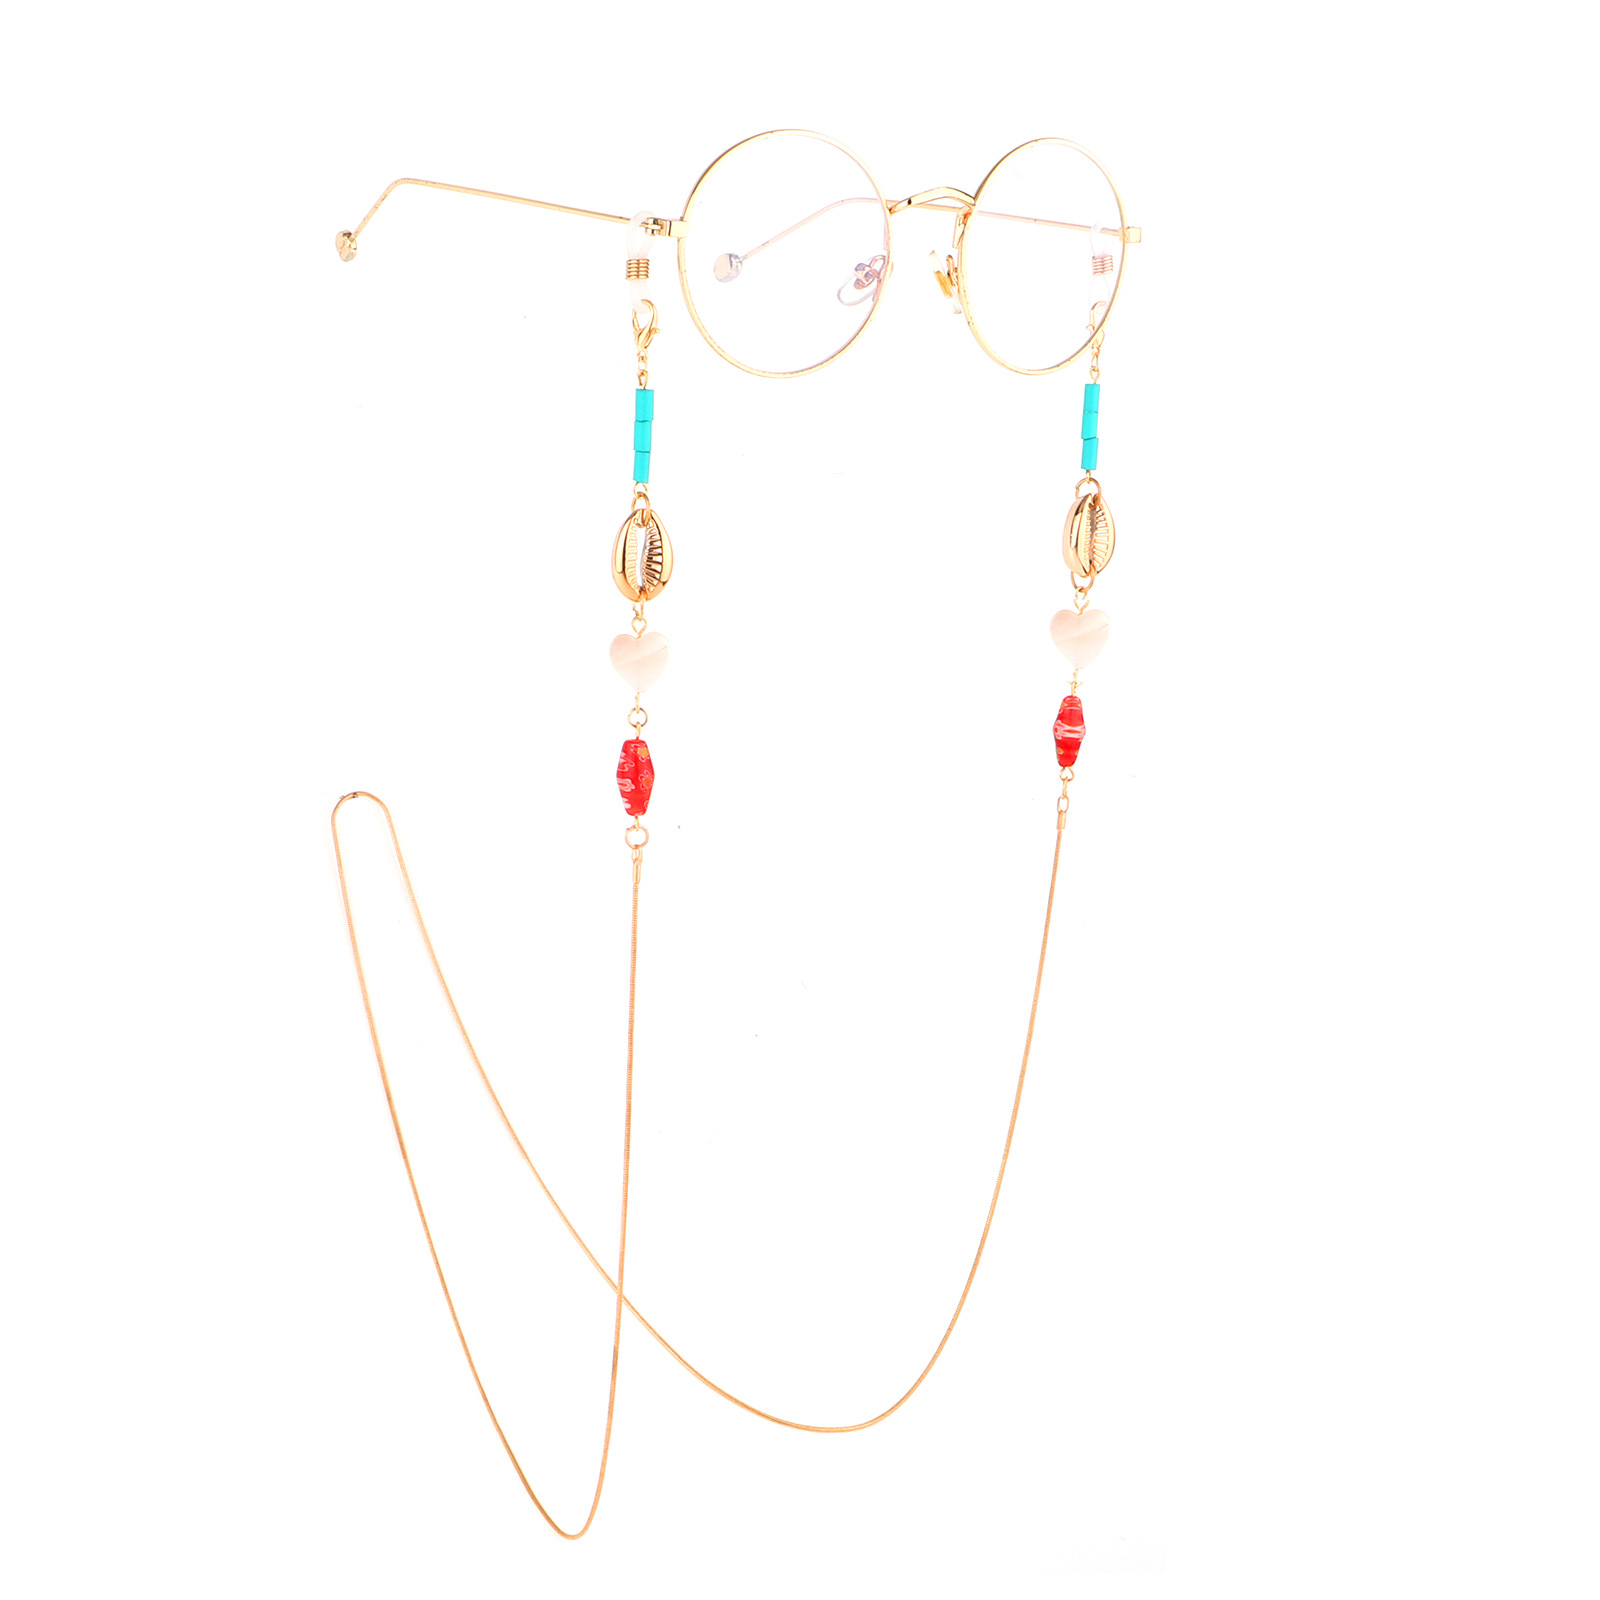 2019 Stone Bead Heart Glasses Chain Sunglasses Spectacles Vintage Copper Chain Holder Cord Lanyard Necklace Eyewear Accessories